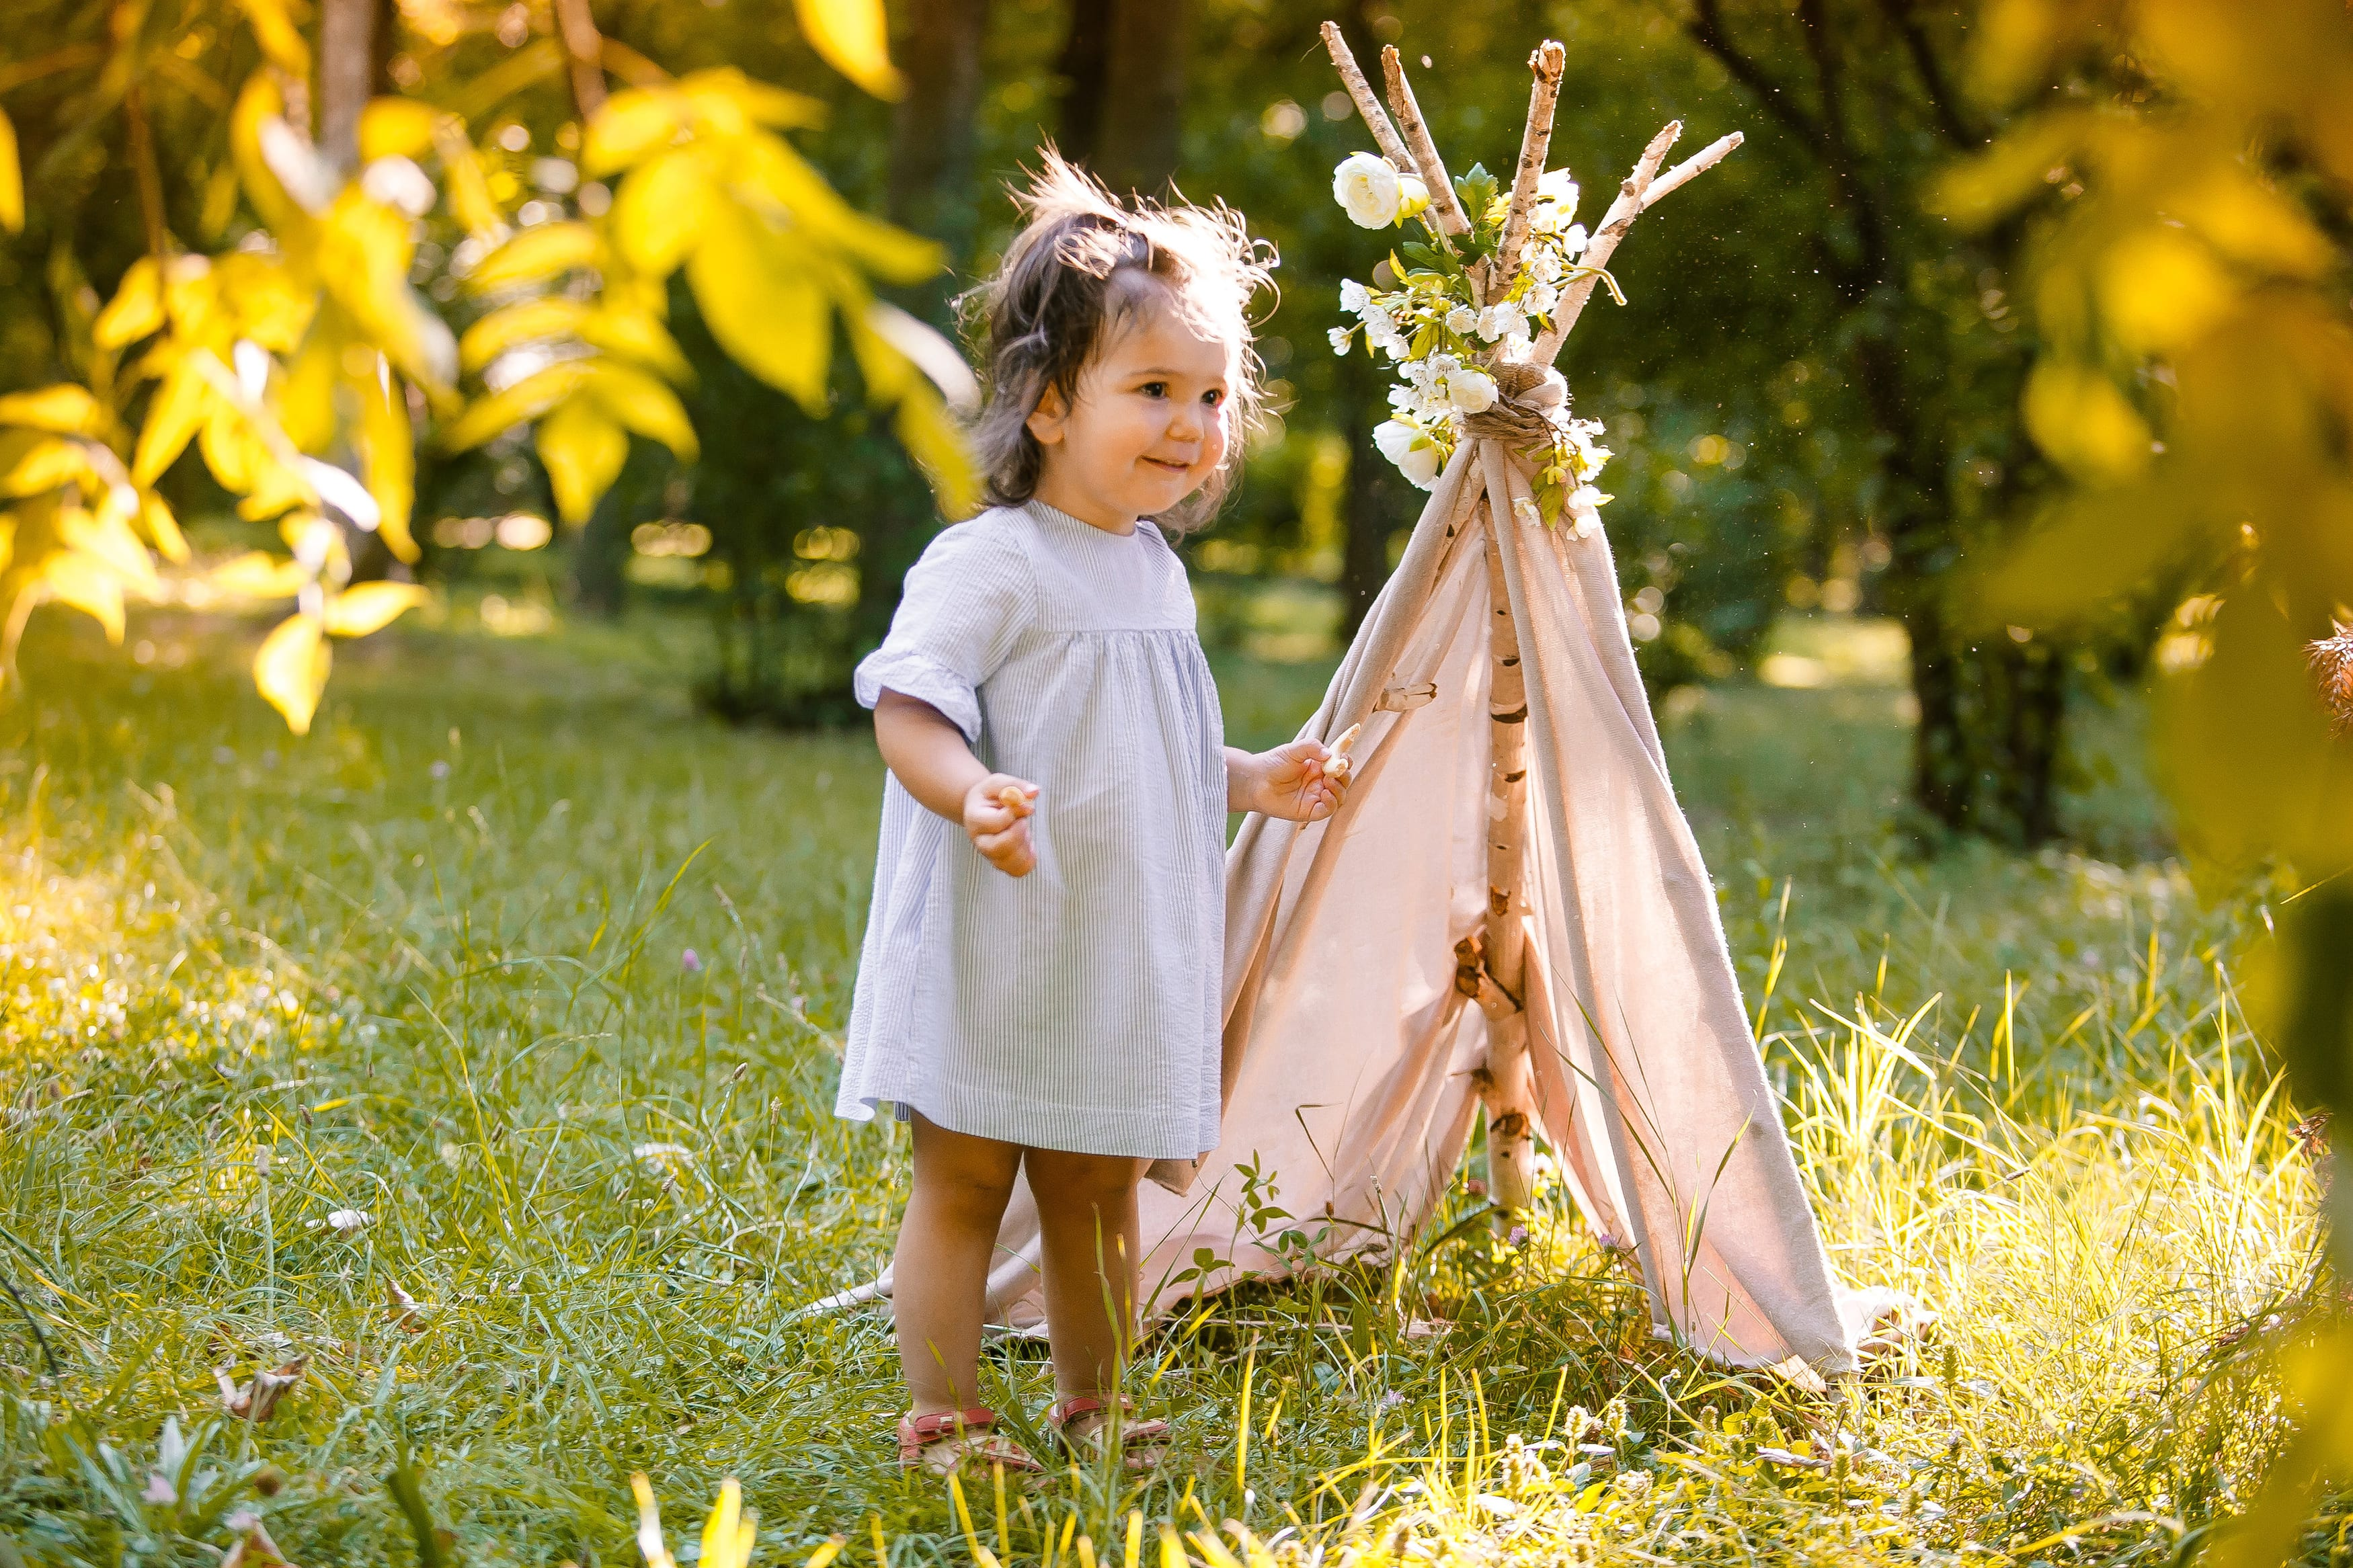 Kinderfotoshooting Outdoor